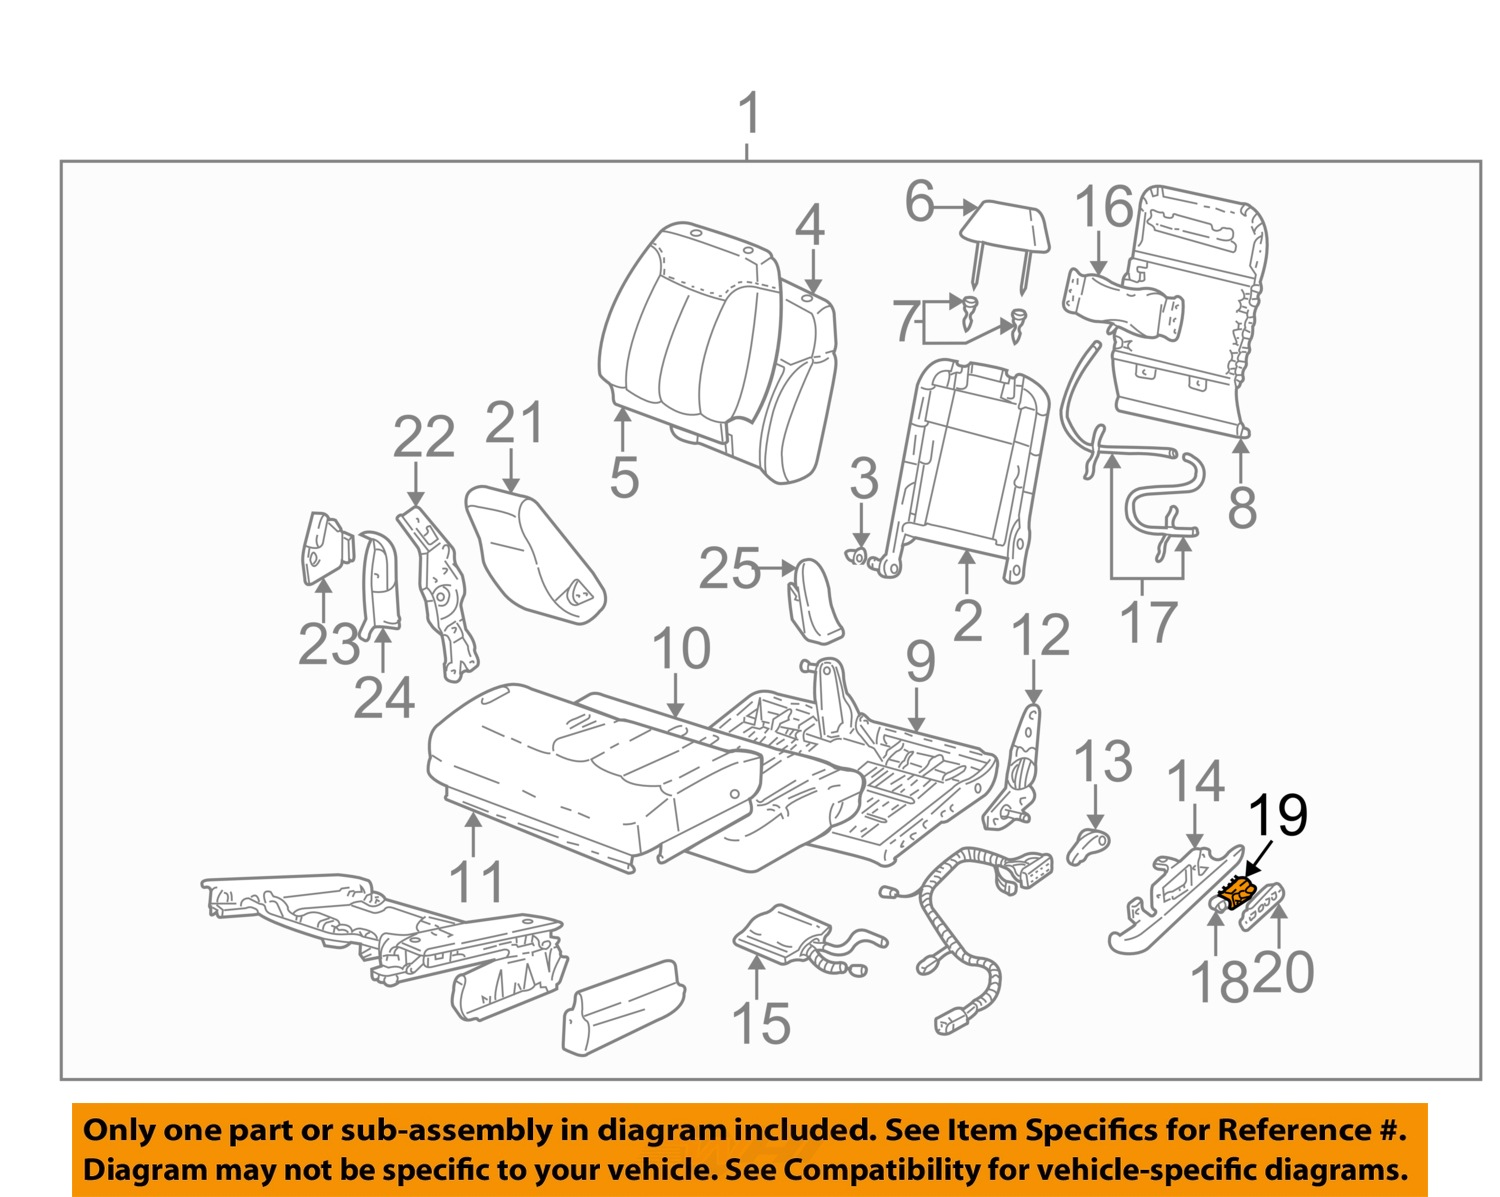 Gm Oem Power Seat Switch 22543666 Ebay Top Wiring Diagram For 1942 47 Chevrolet Passenger Cars Cabriolet 19 On Only Genuine Oe Factory Original Item